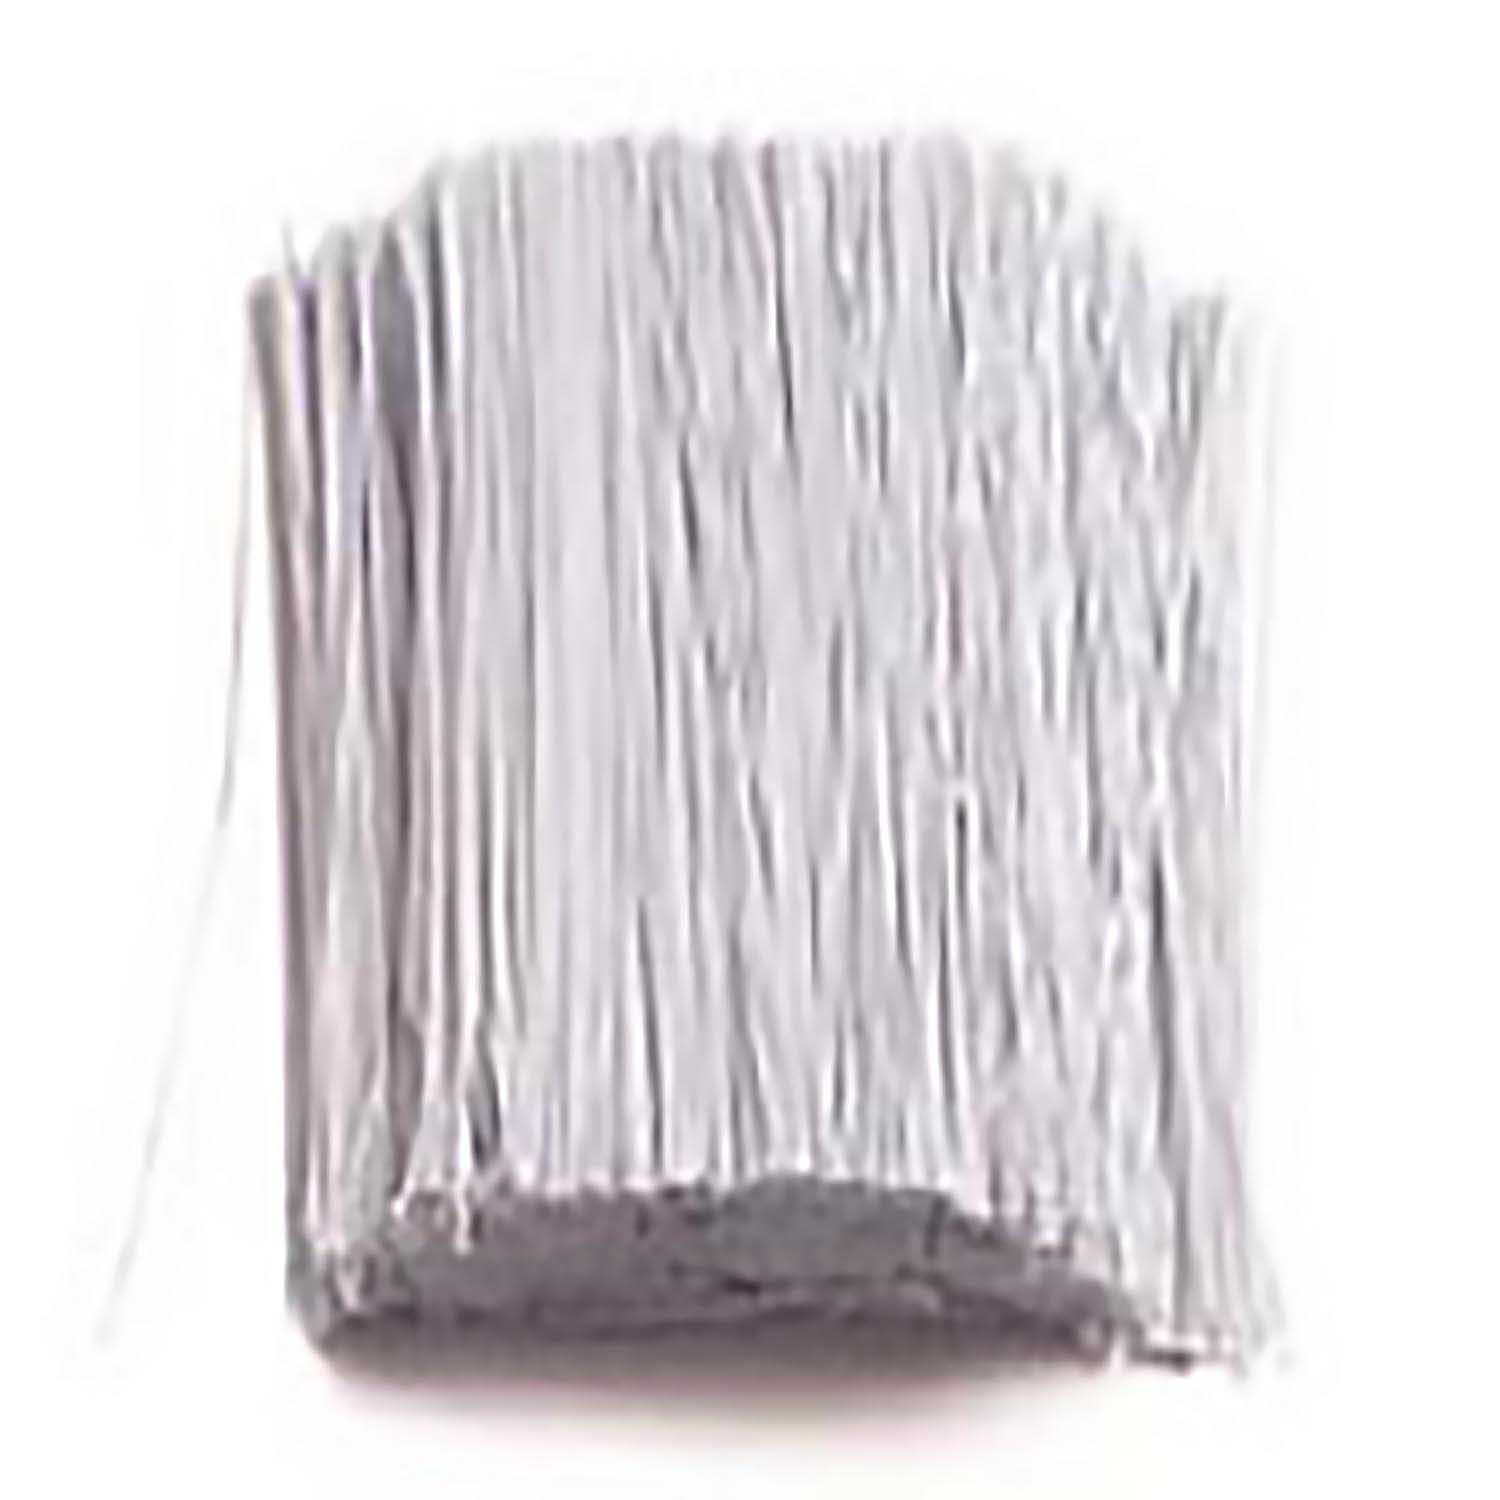 "26 Gauge White 6"" Covered Wire"